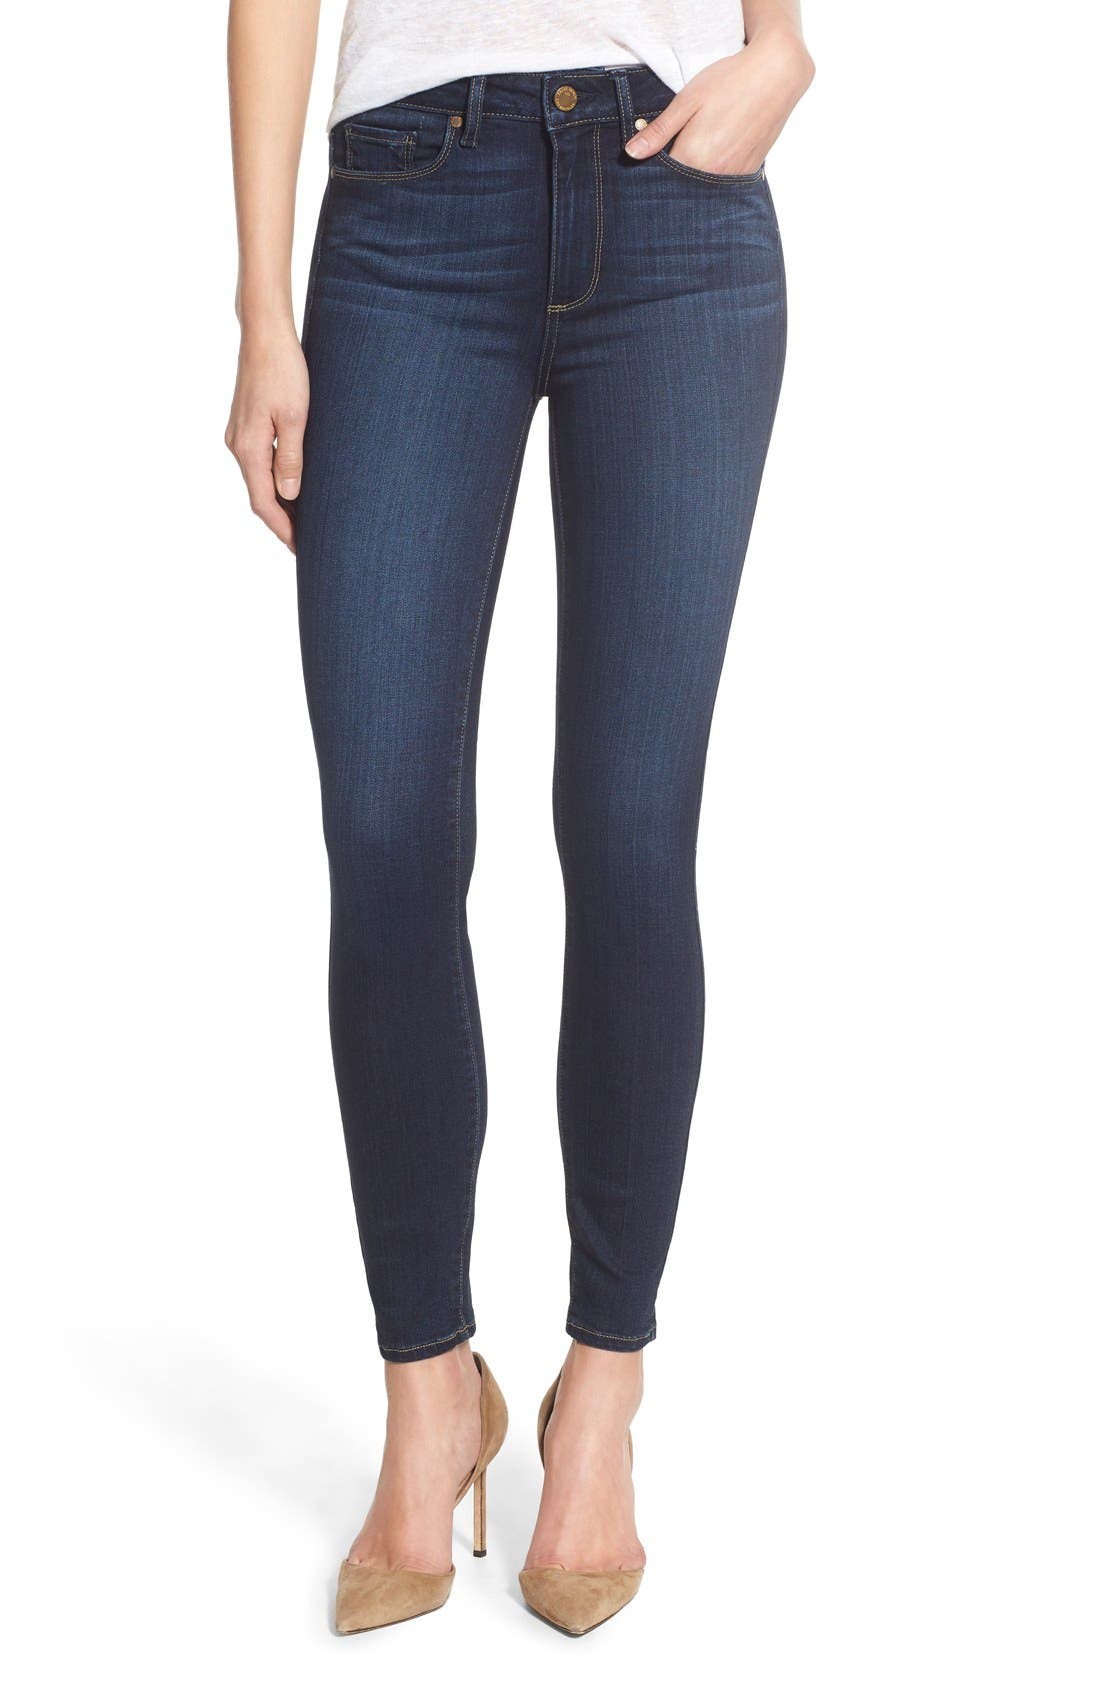 Transcend - Hoxton High Waist Ankle Ultra Skinny Jeans,                             Main thumbnail 1, color,                             Hartmann